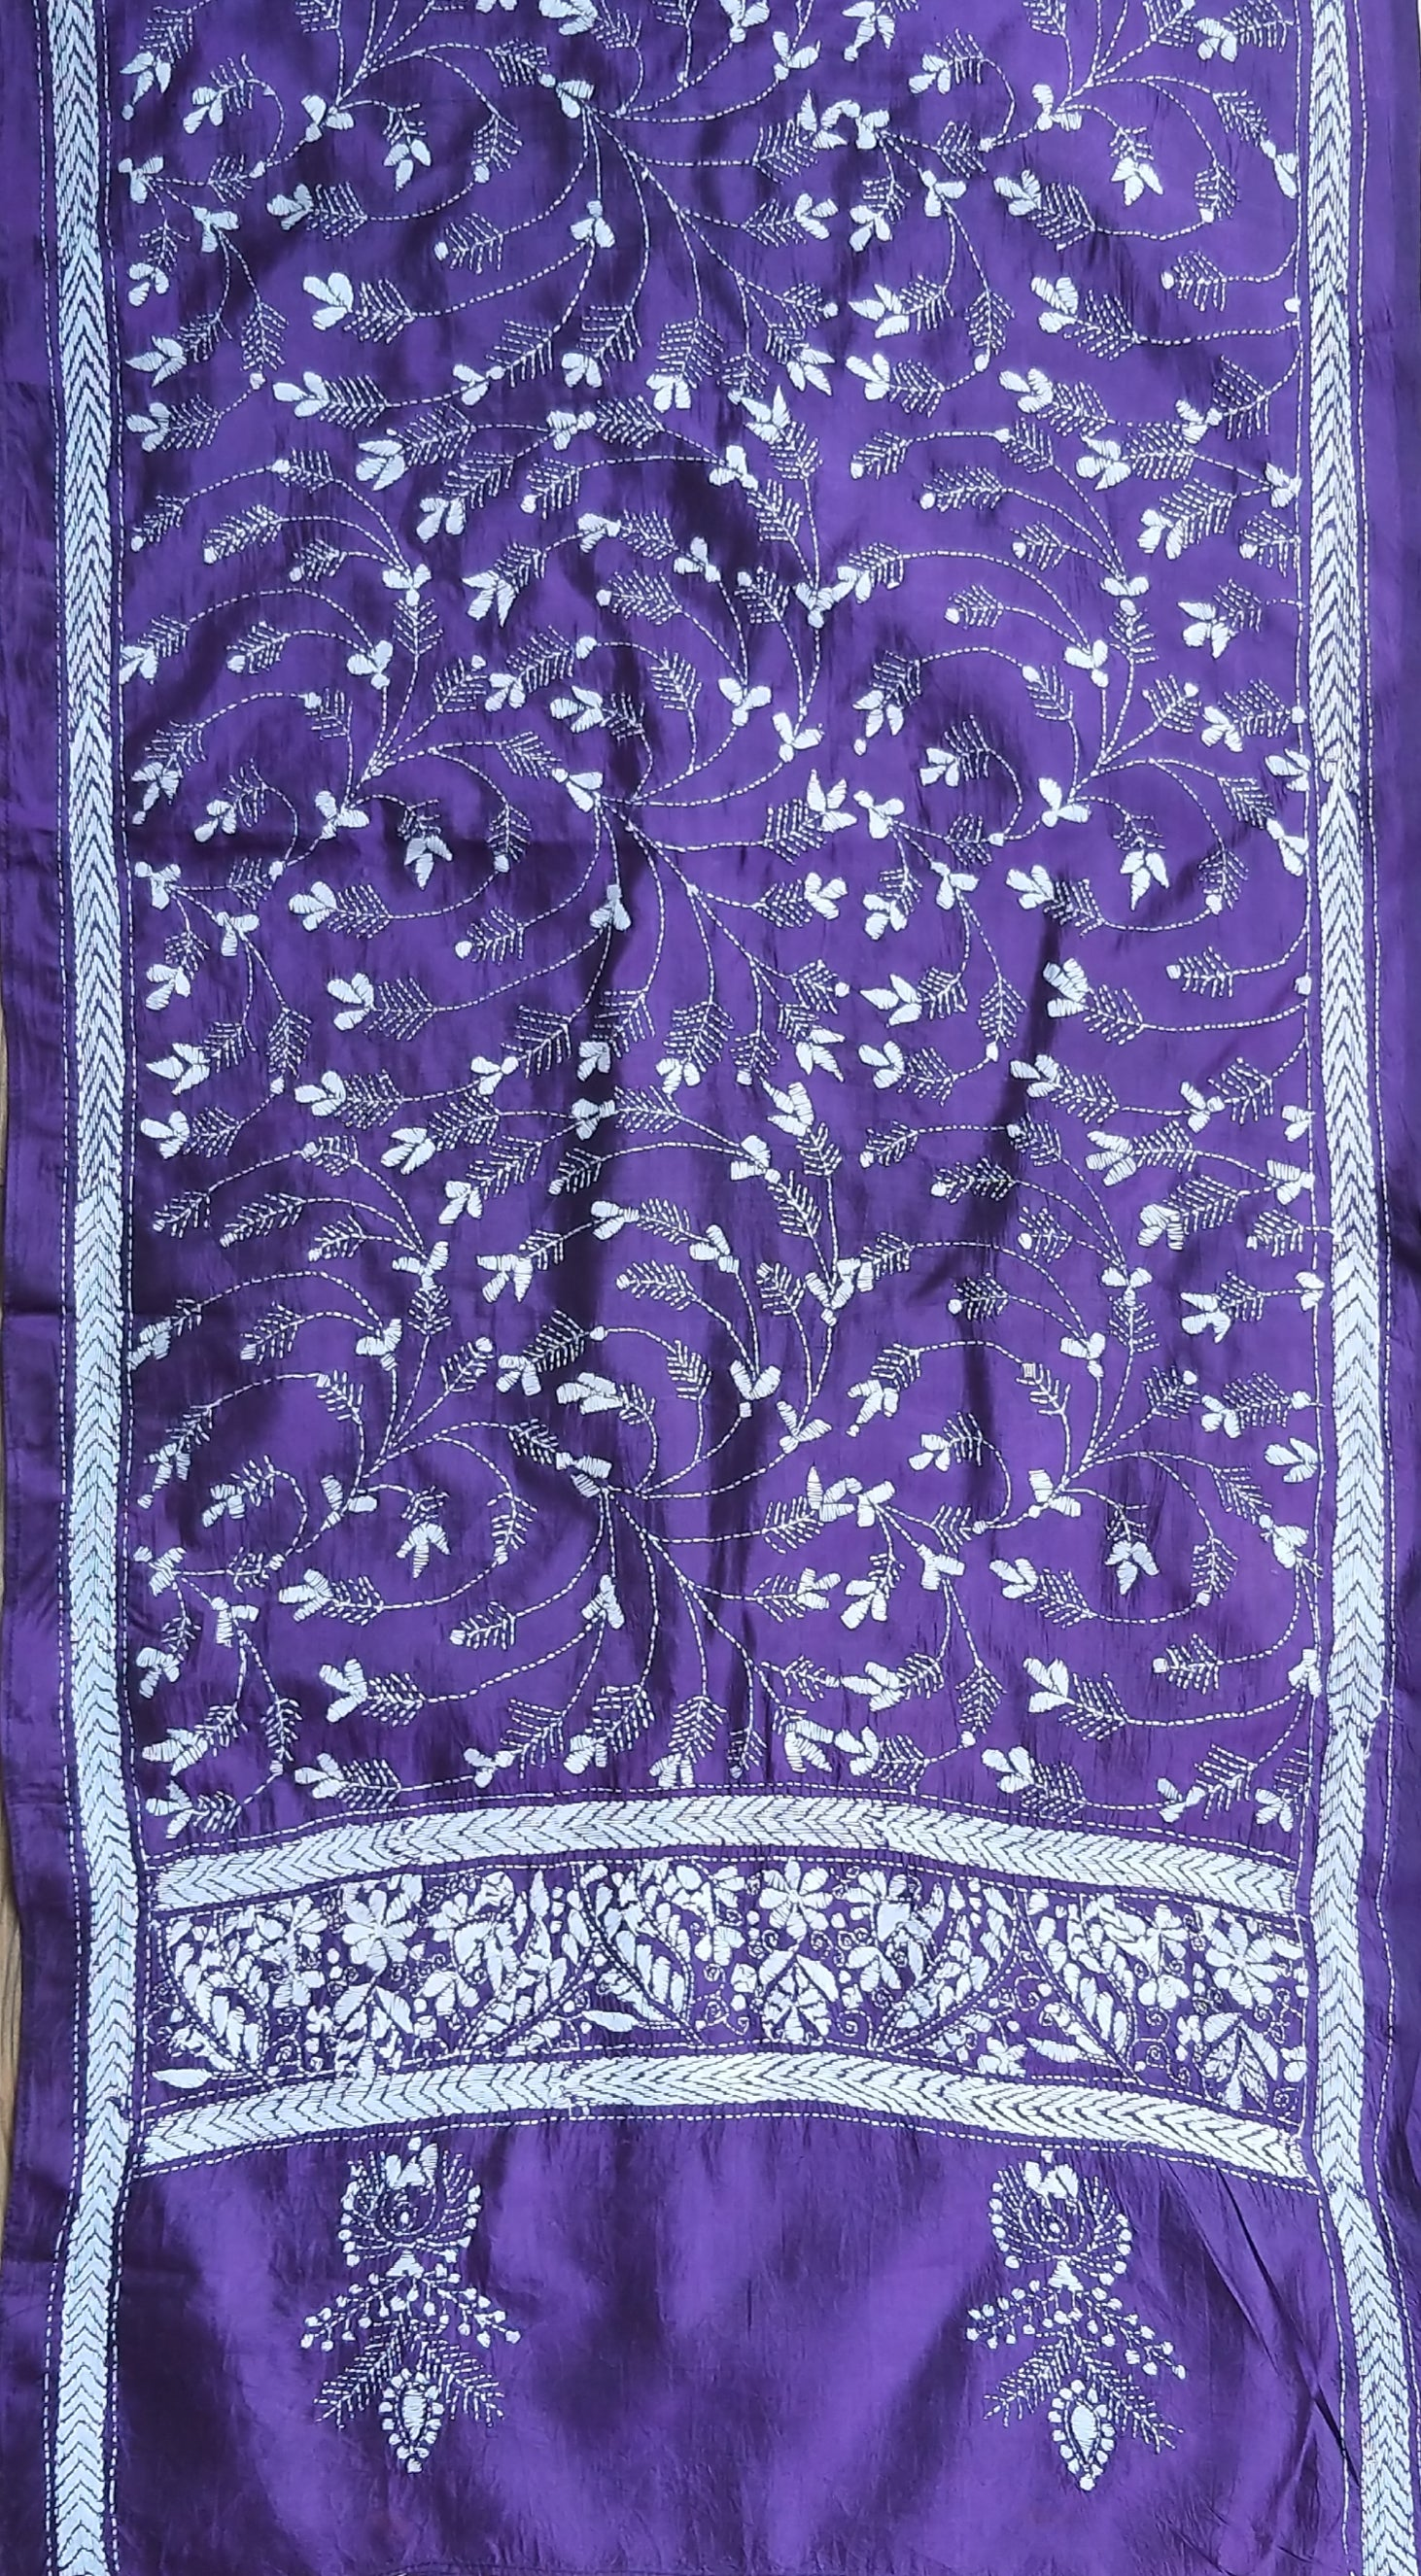 HAND EMBROIDERY STOLE